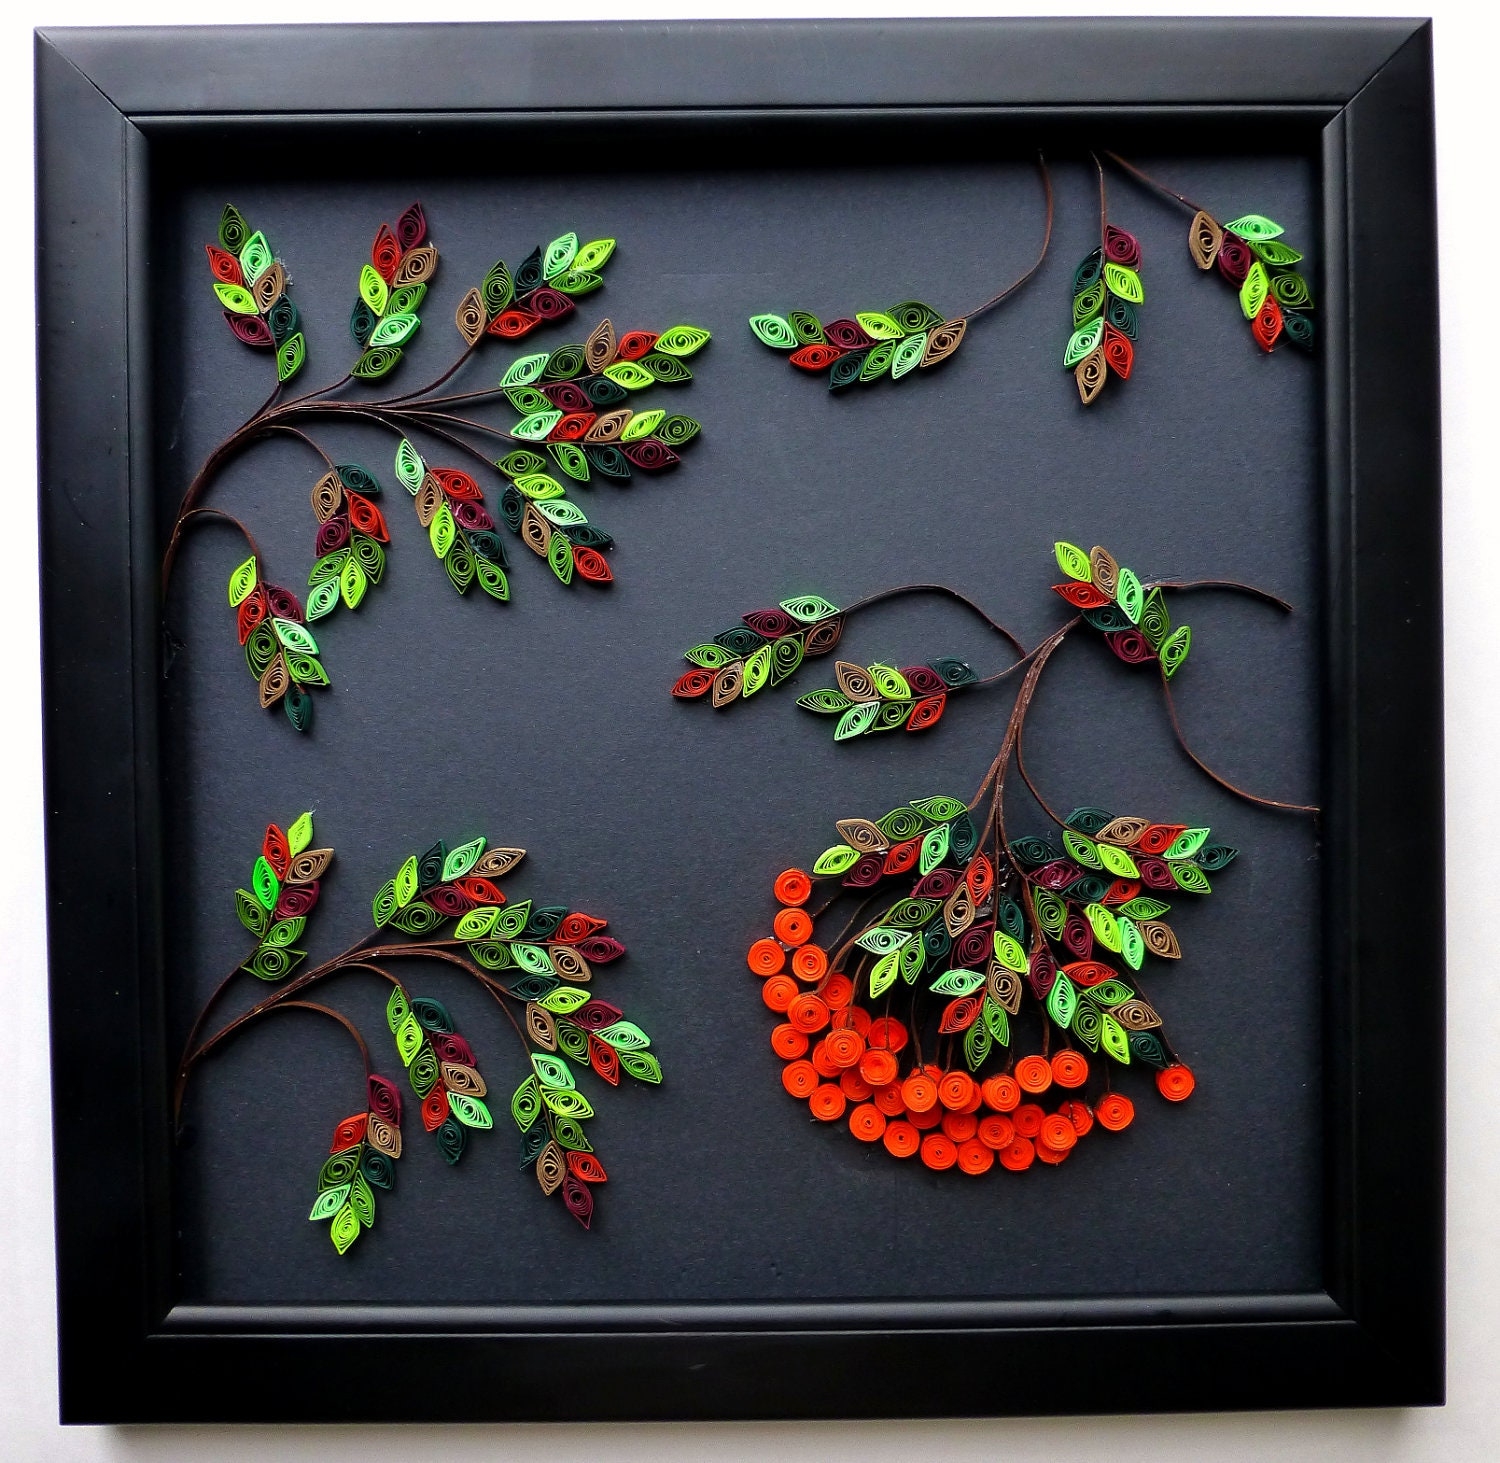 Quilling Wall Art Design : Wall decor paper quilling rowan tree